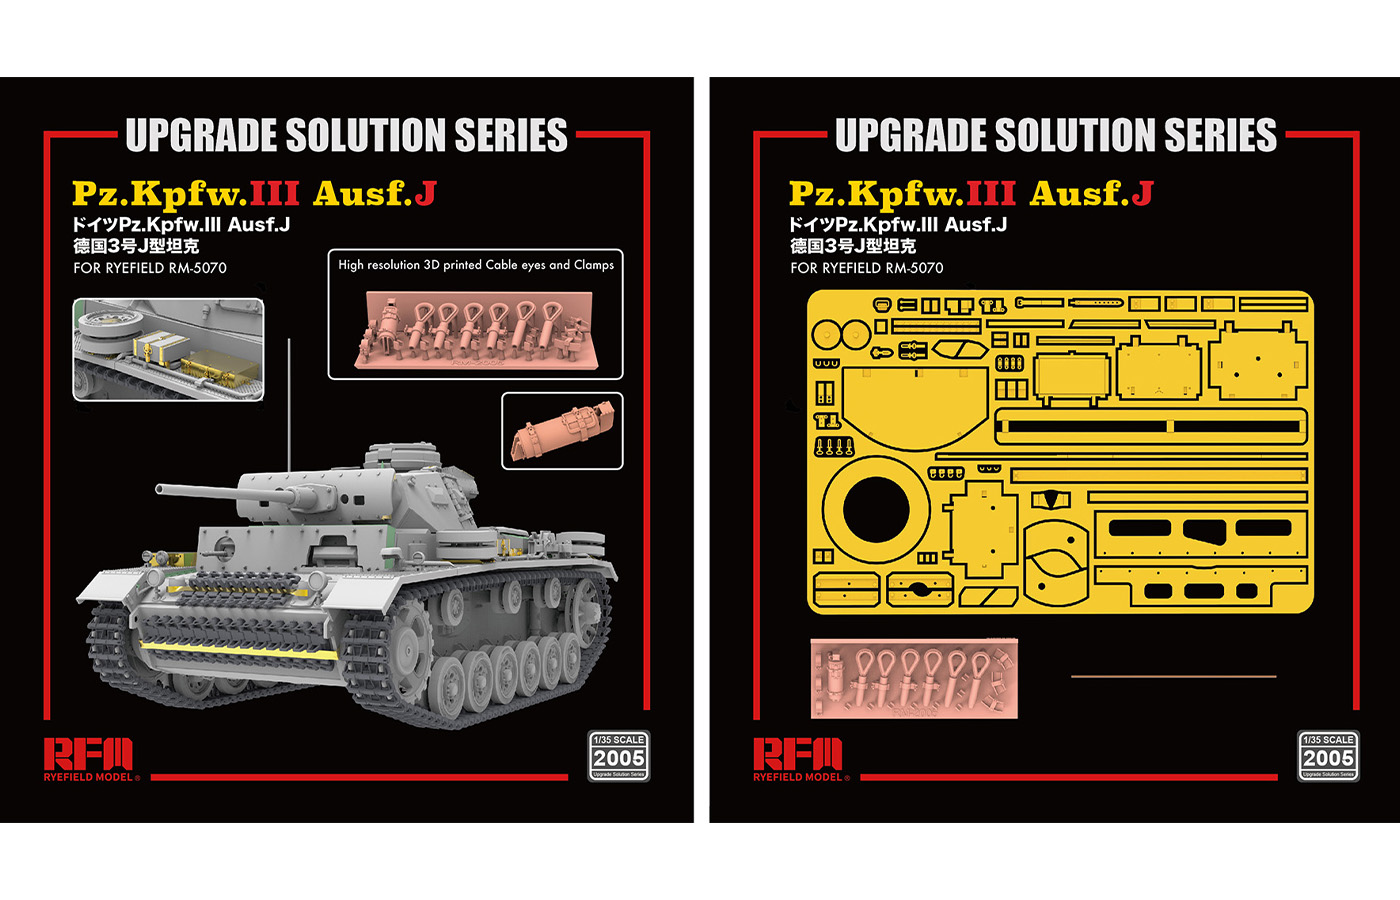 RM-2005  Pz.Kpfw.III Ausf.J UPGRADE SOLUTION SERIES